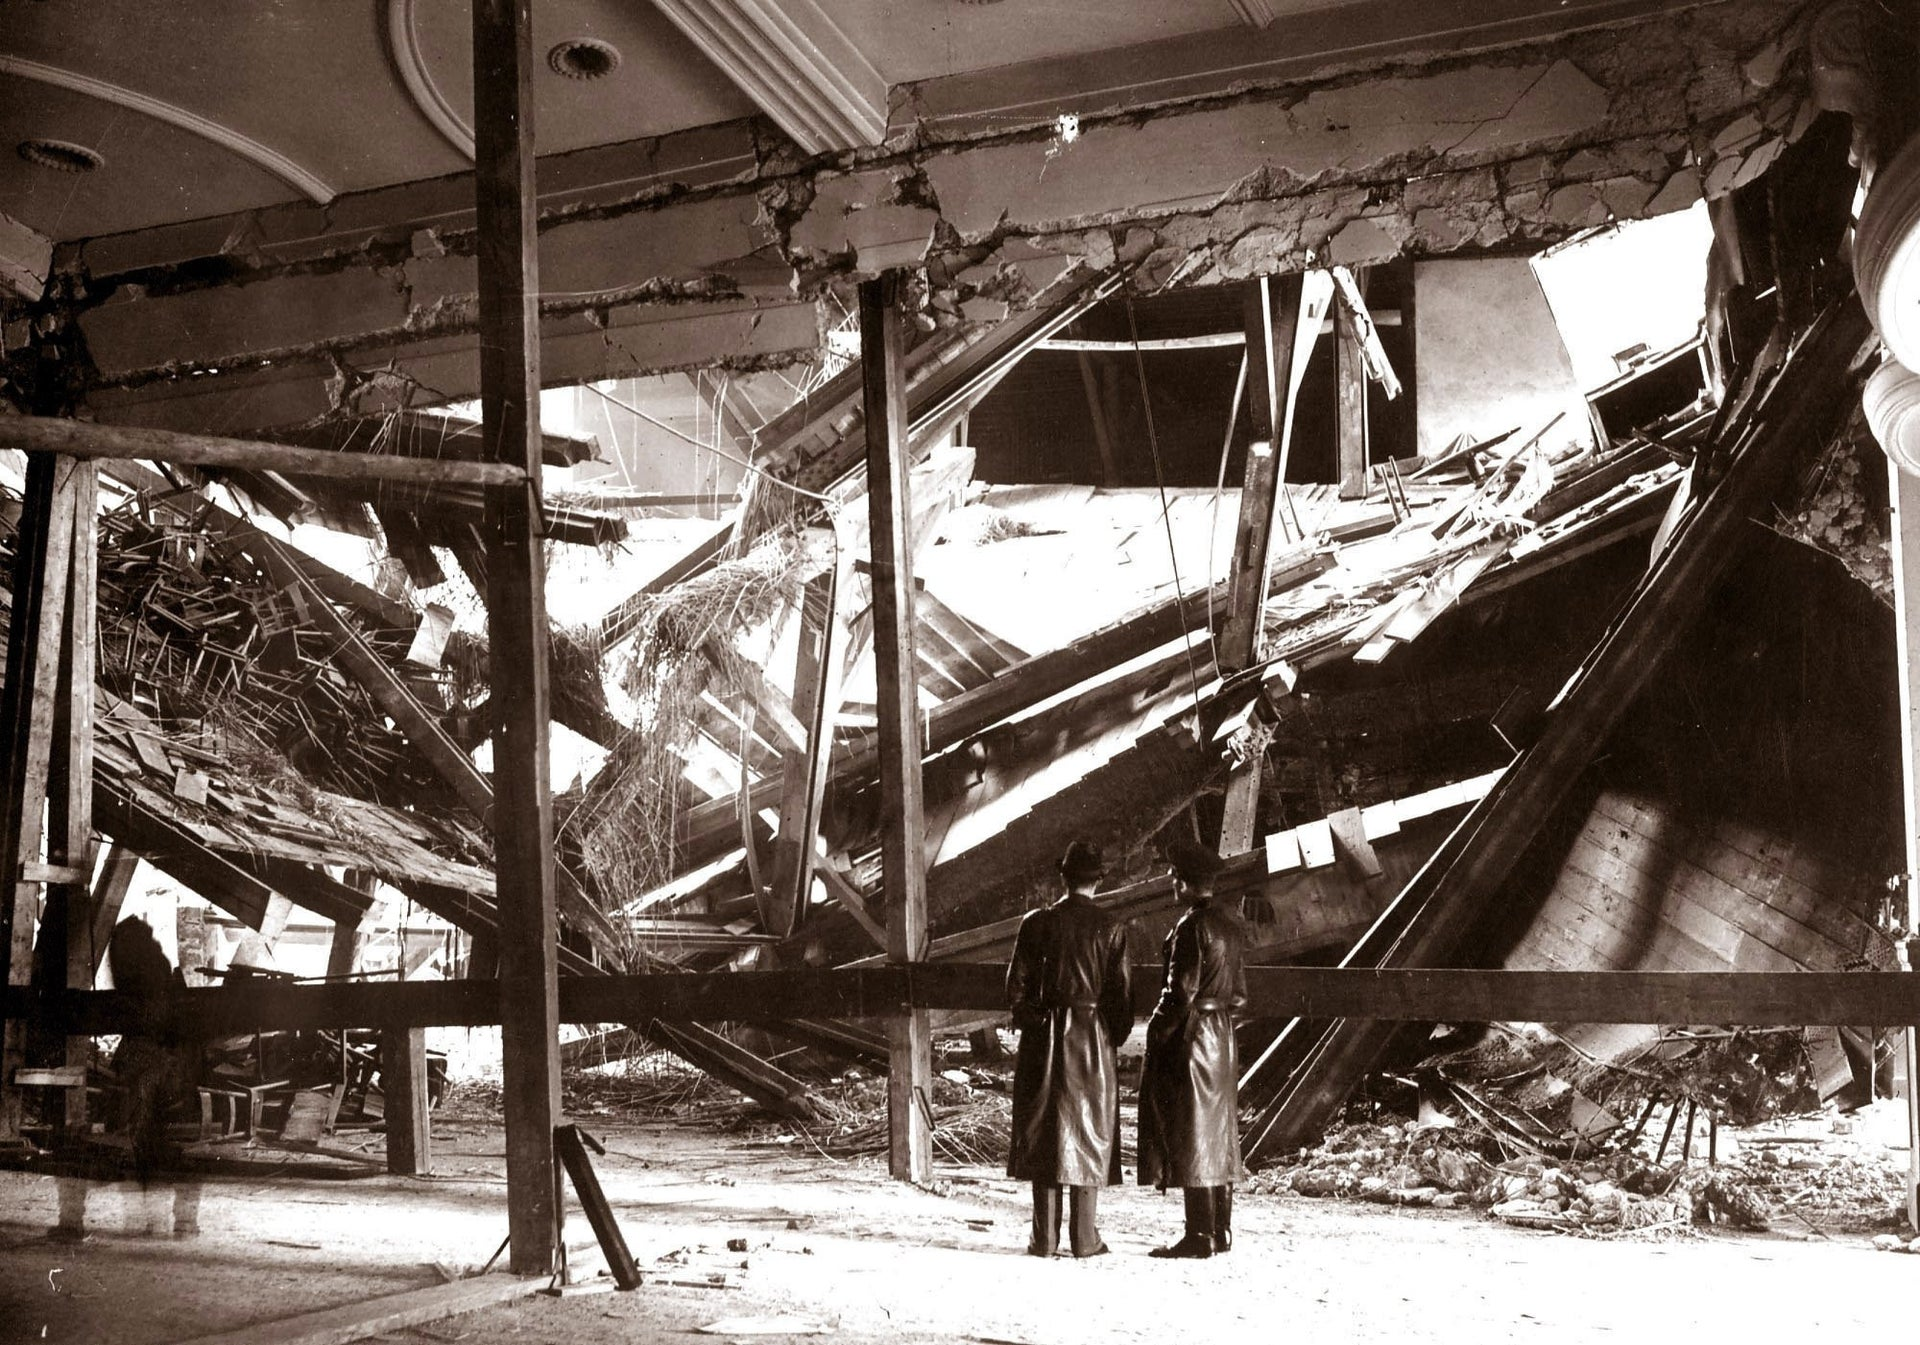 The aftermath of the bombing at a Munich beer hall in November 1939 in which Georg Elser intended to kill Hitler. Harro and Libertas preferred pamphlets to assassination attempts.